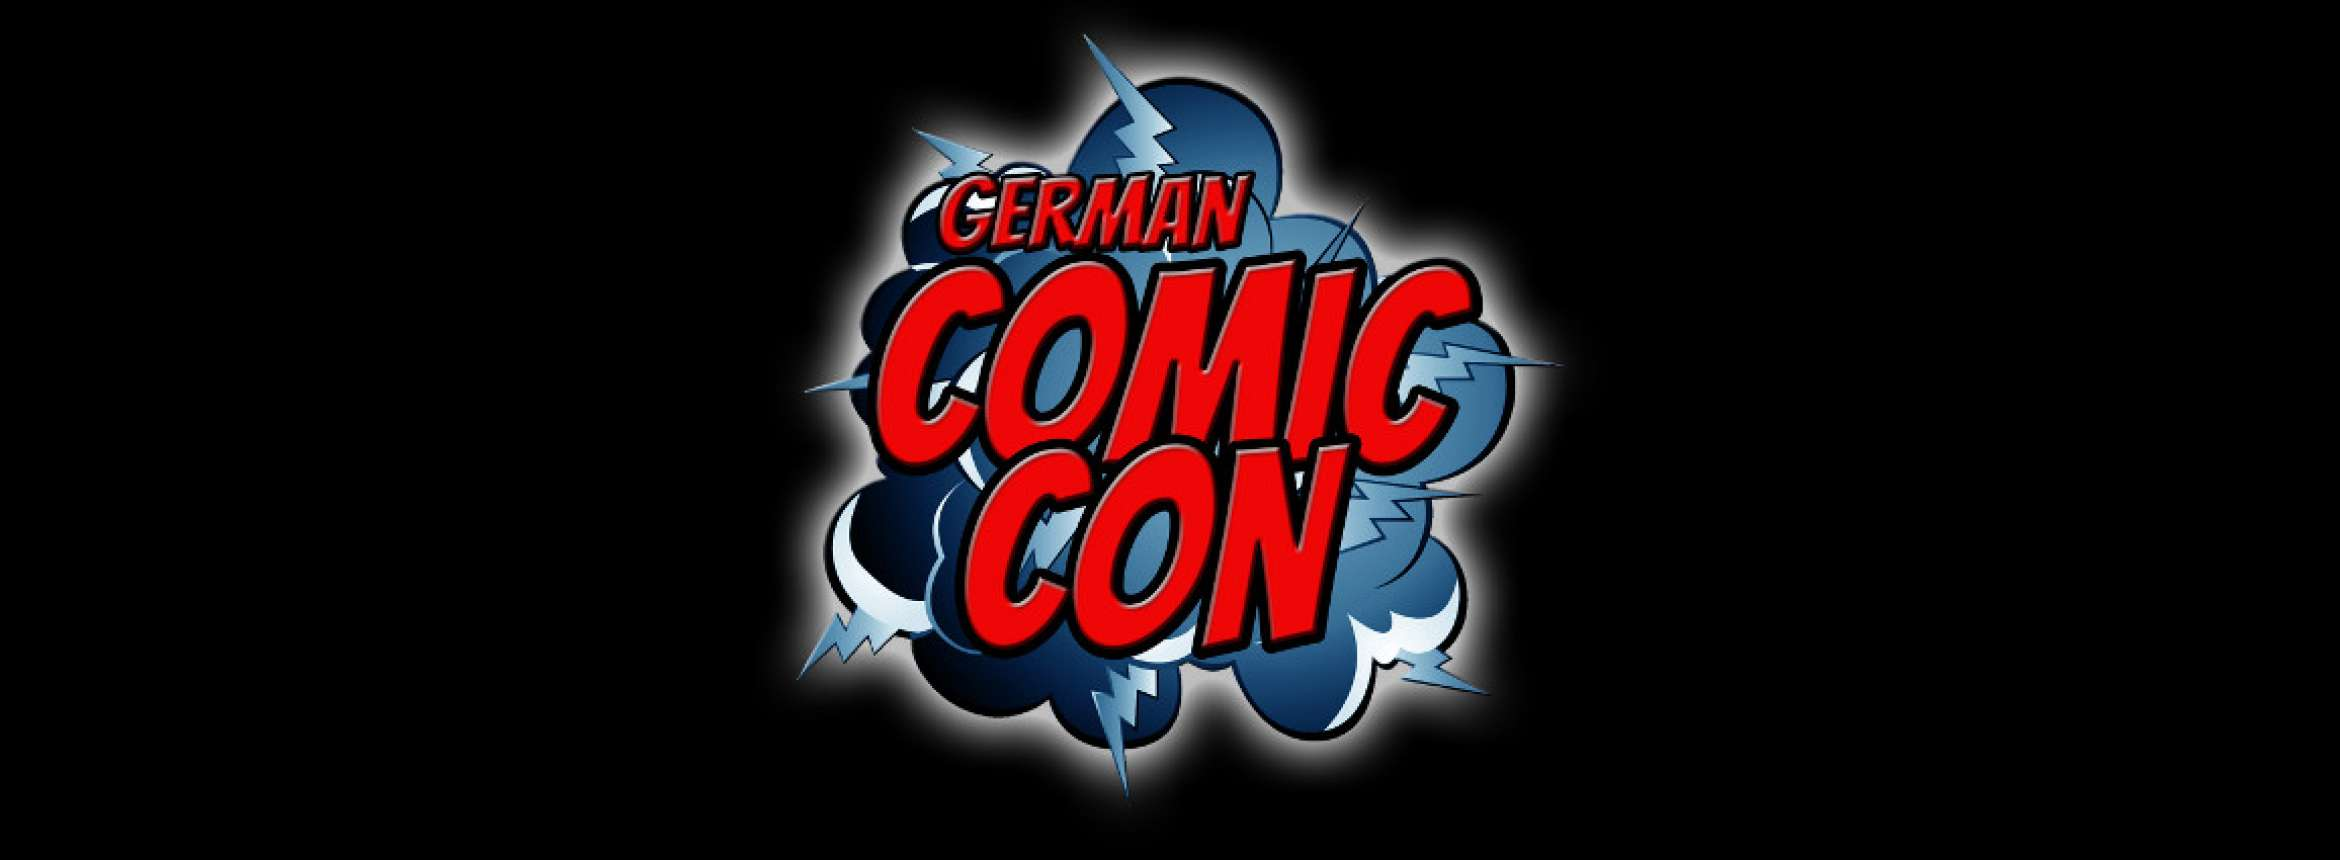 ©German Comic Con